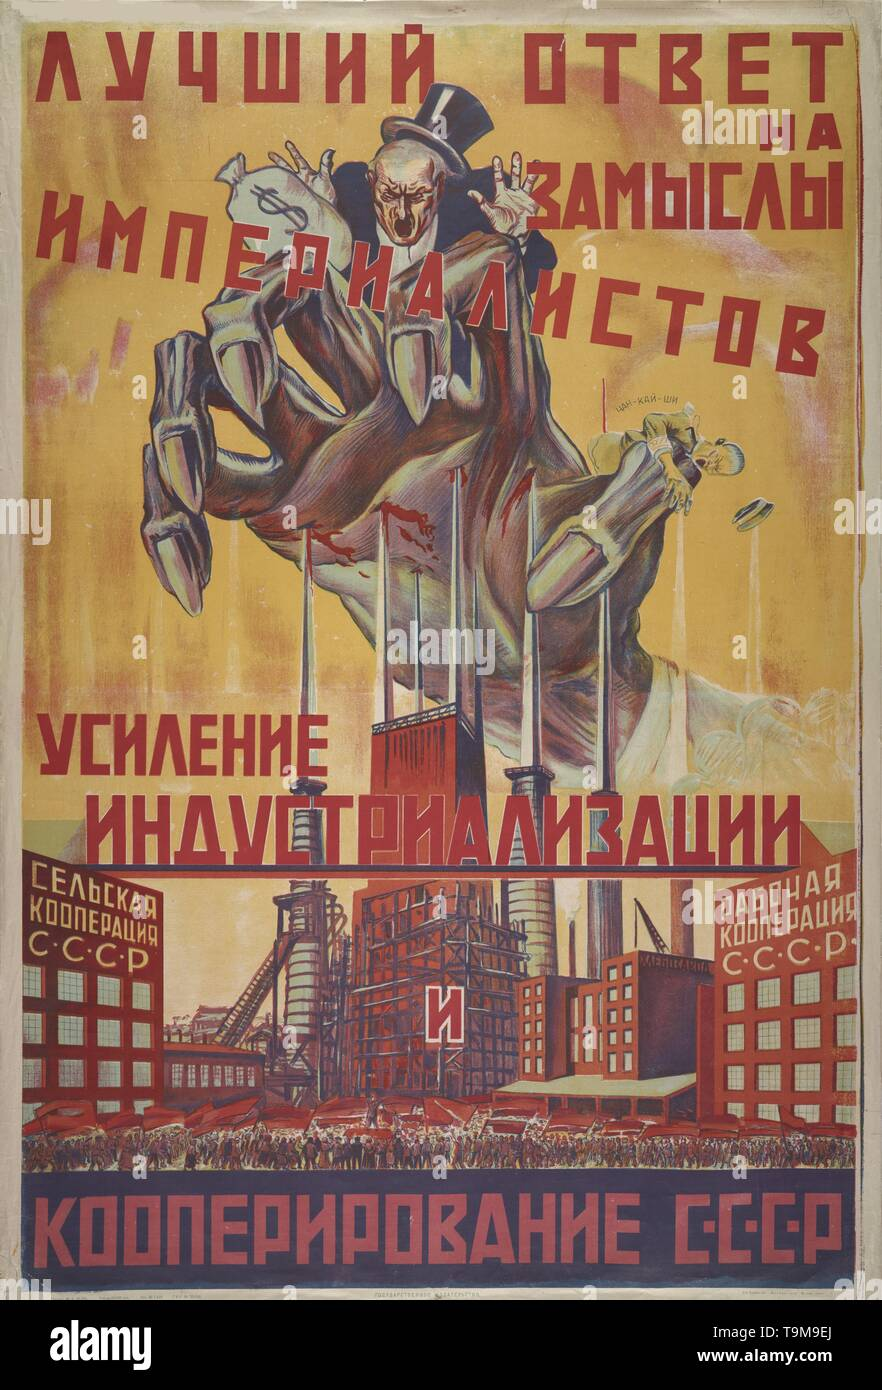 The Best Answer to the plans of Imperialism is a Strong Industrialization and a Spirit of Cooperation. Museum: PRIVATE COLLECTION. Author: ANONYMOUS. - Stock Image